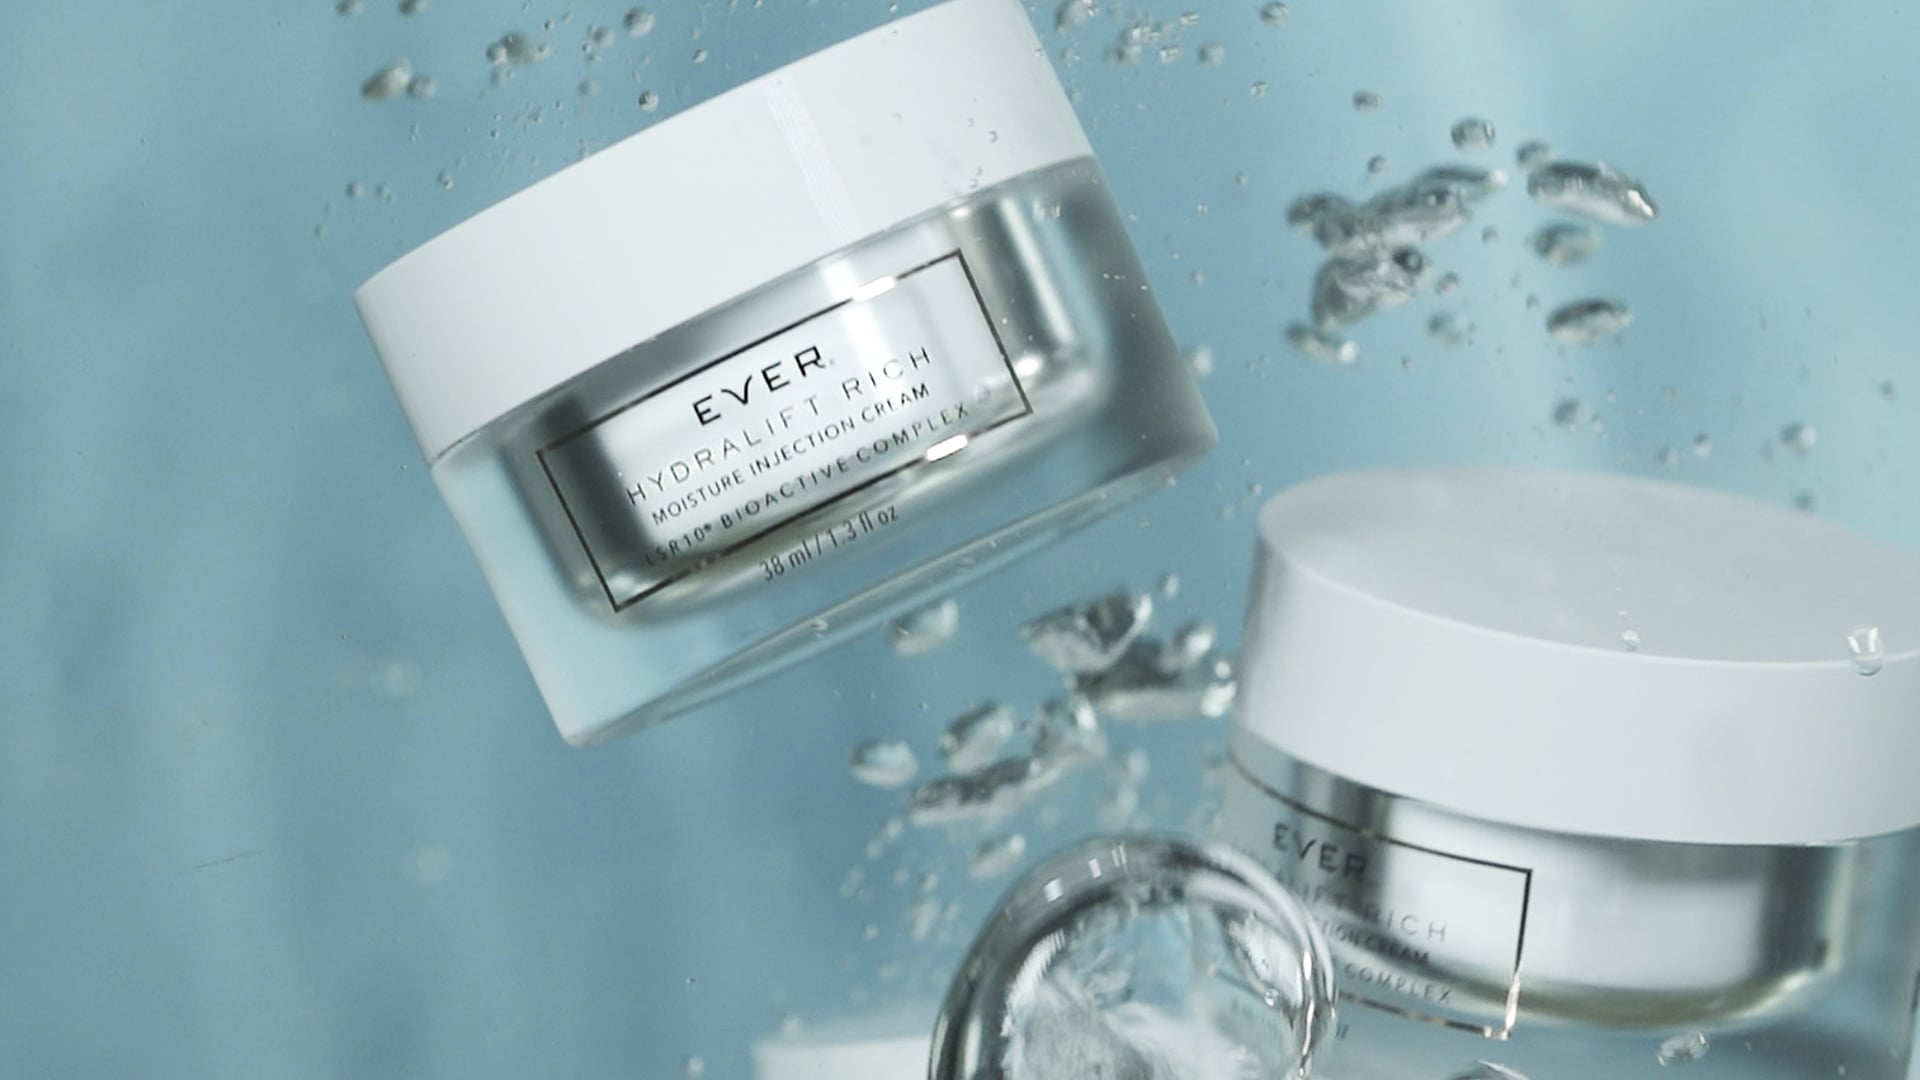 Hydralift Rich by EVER